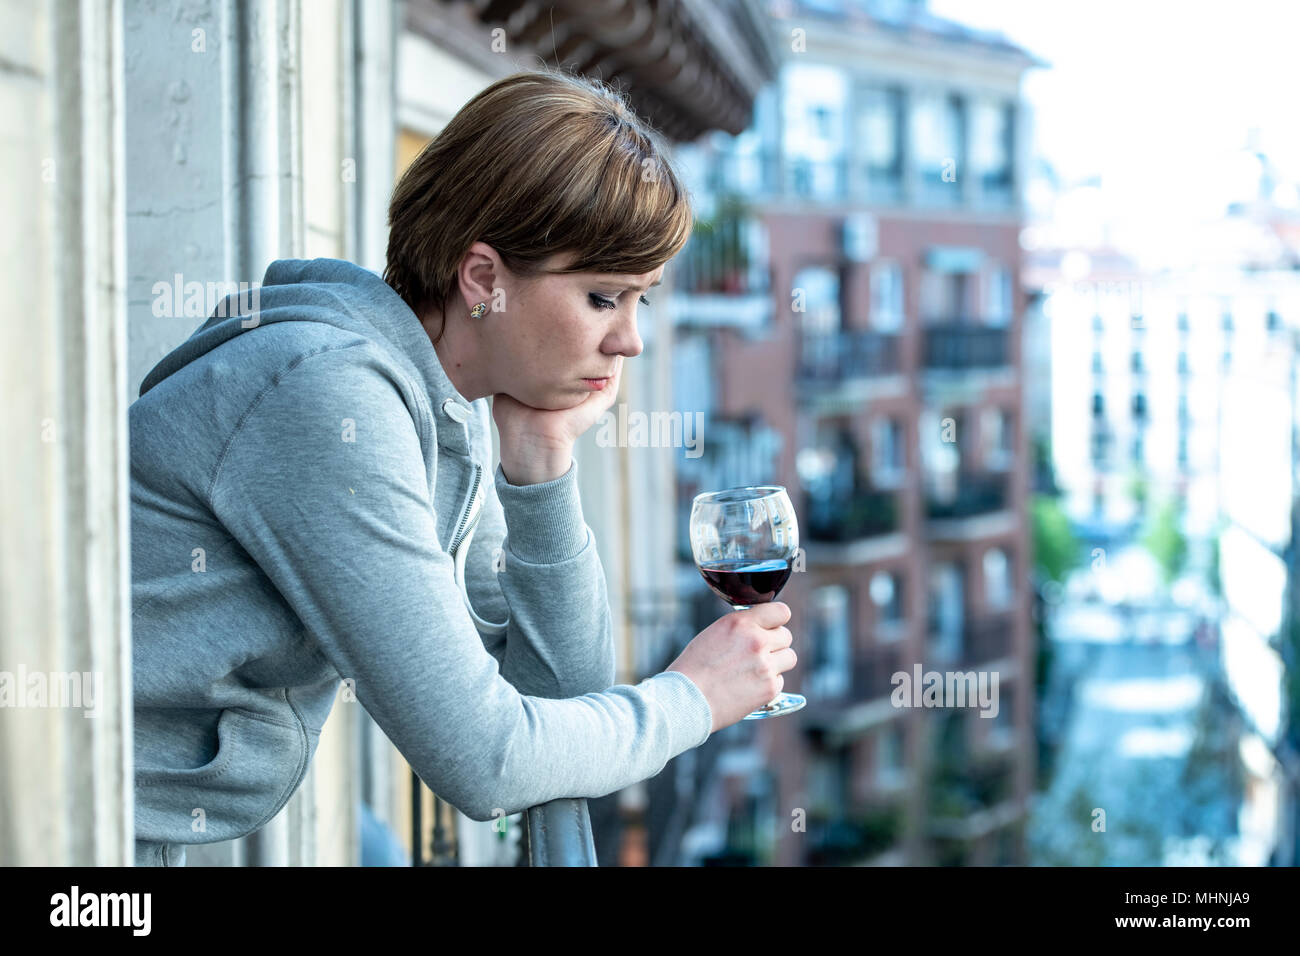 Beautiful red haired caucasian woman suffering from depression holding a glass of wine on a balcony at home. Staring out feeling sad, pain and grief.  - Stock Image